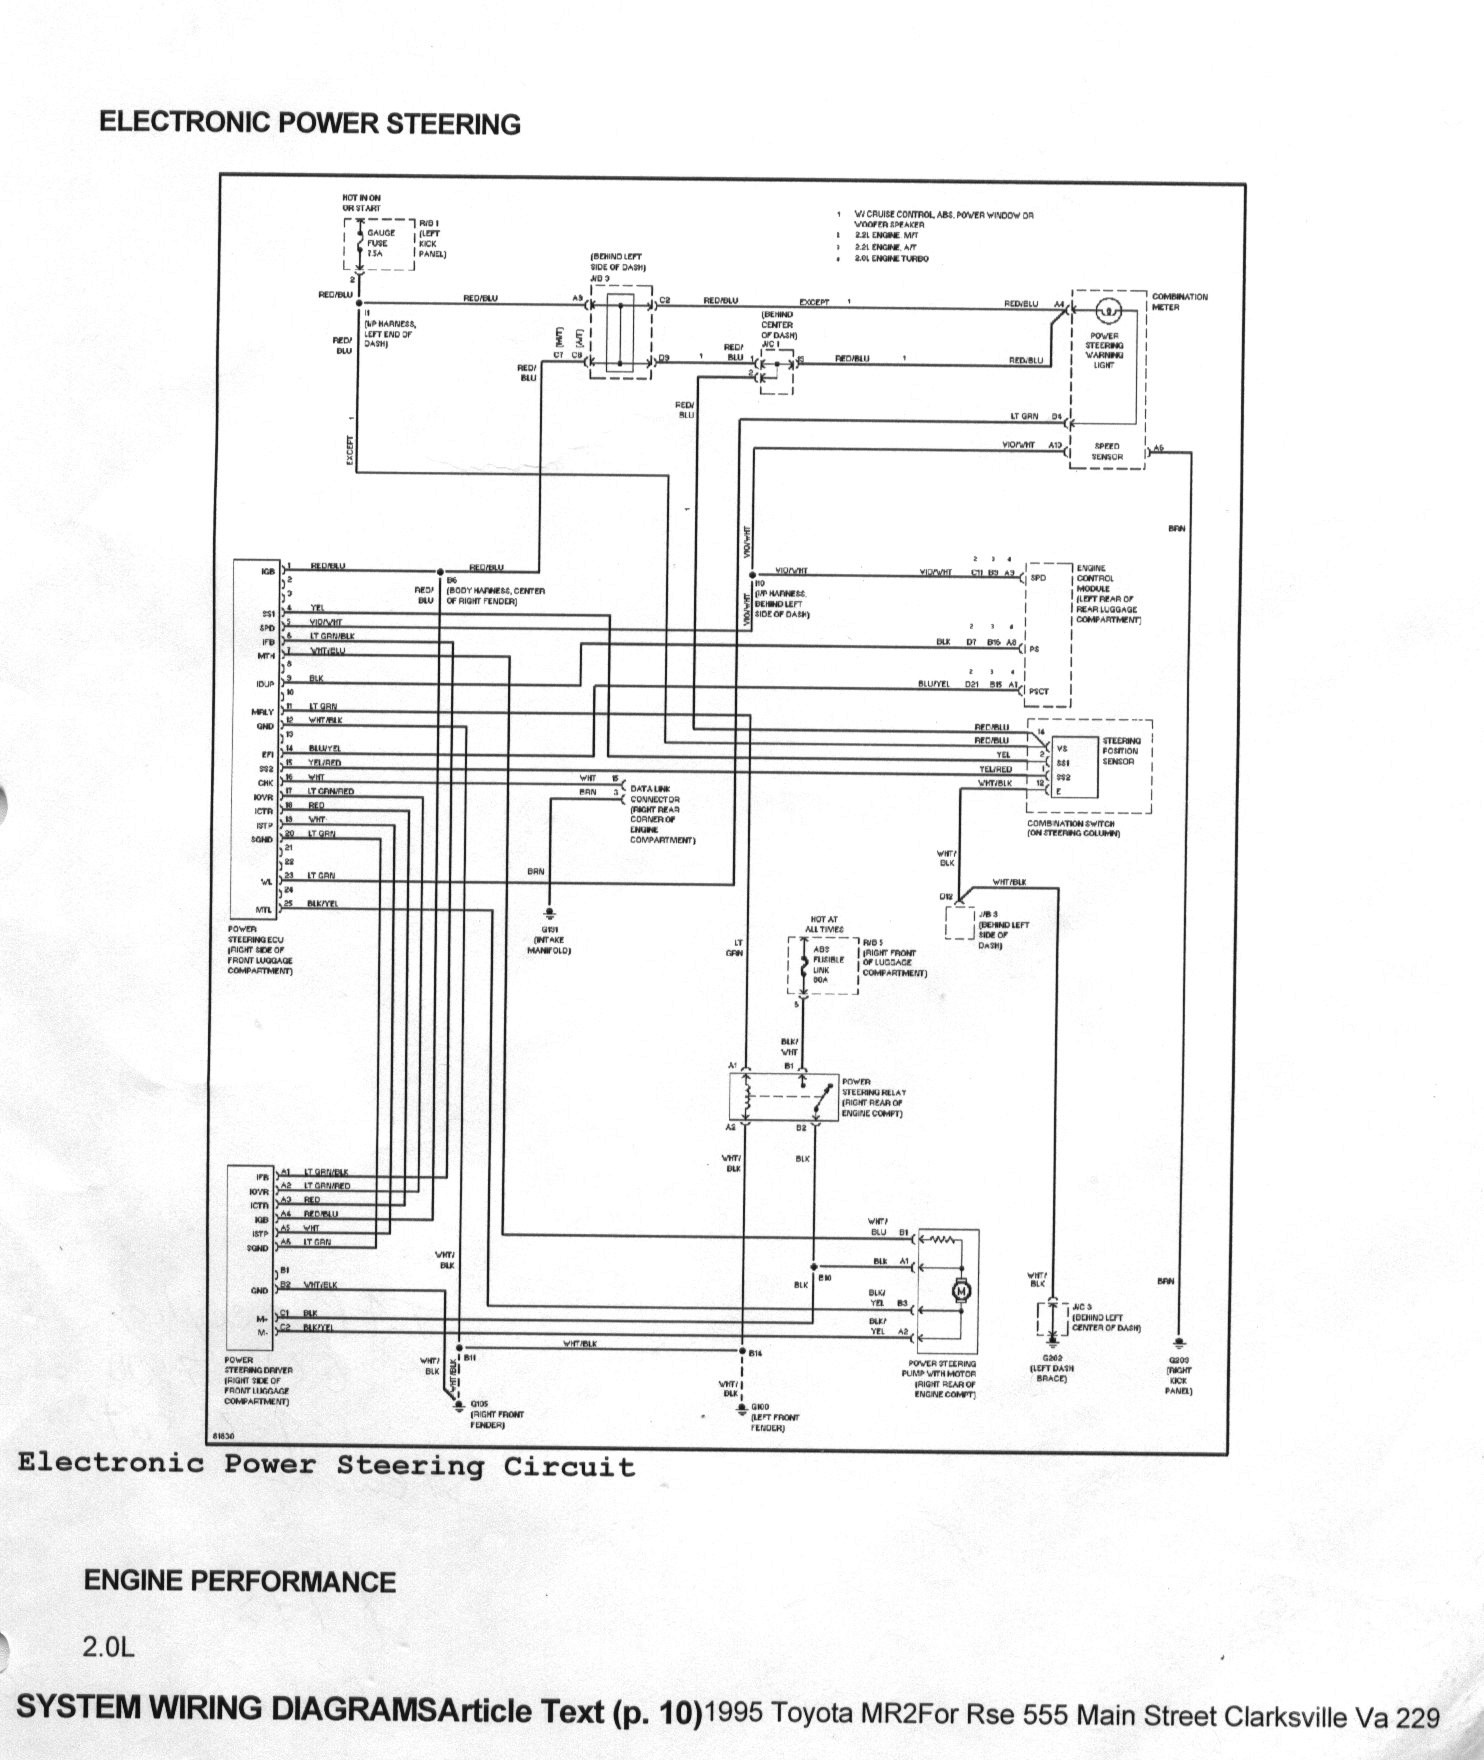 1993 Toyota Mr2 Wiring Diagram Books Of Diagrams Free For Paseo Get Image